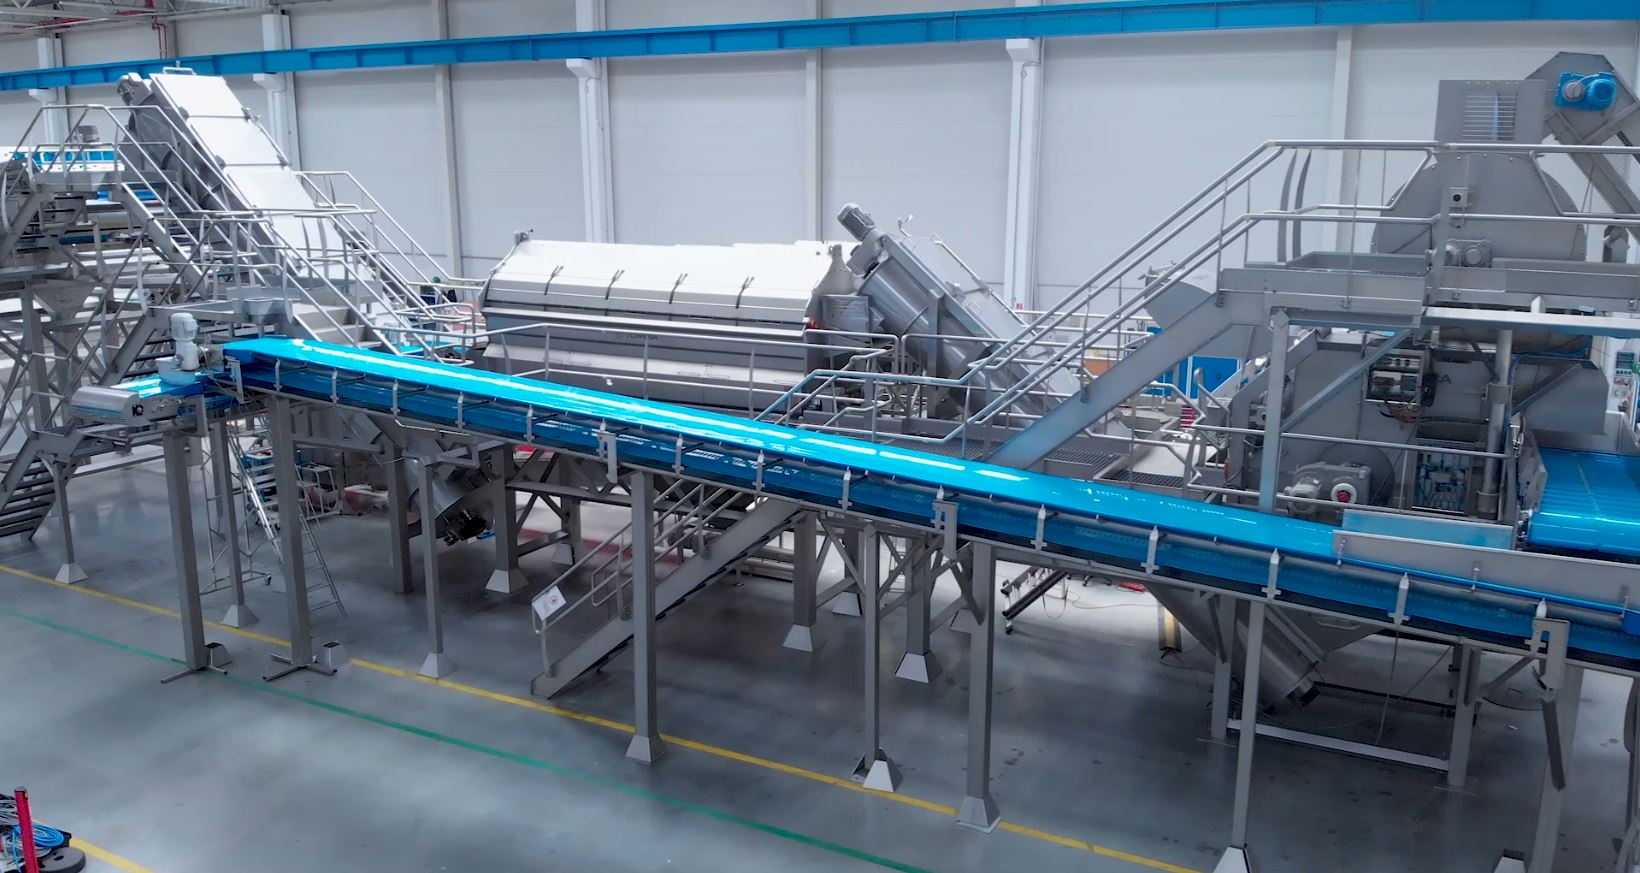 CAVENDISH FARMS INSTALLS TOMRA'S ECO STEAM PEELERS IN ITS NEW PRODUCTION FACILITY IN LETHBRIDGE